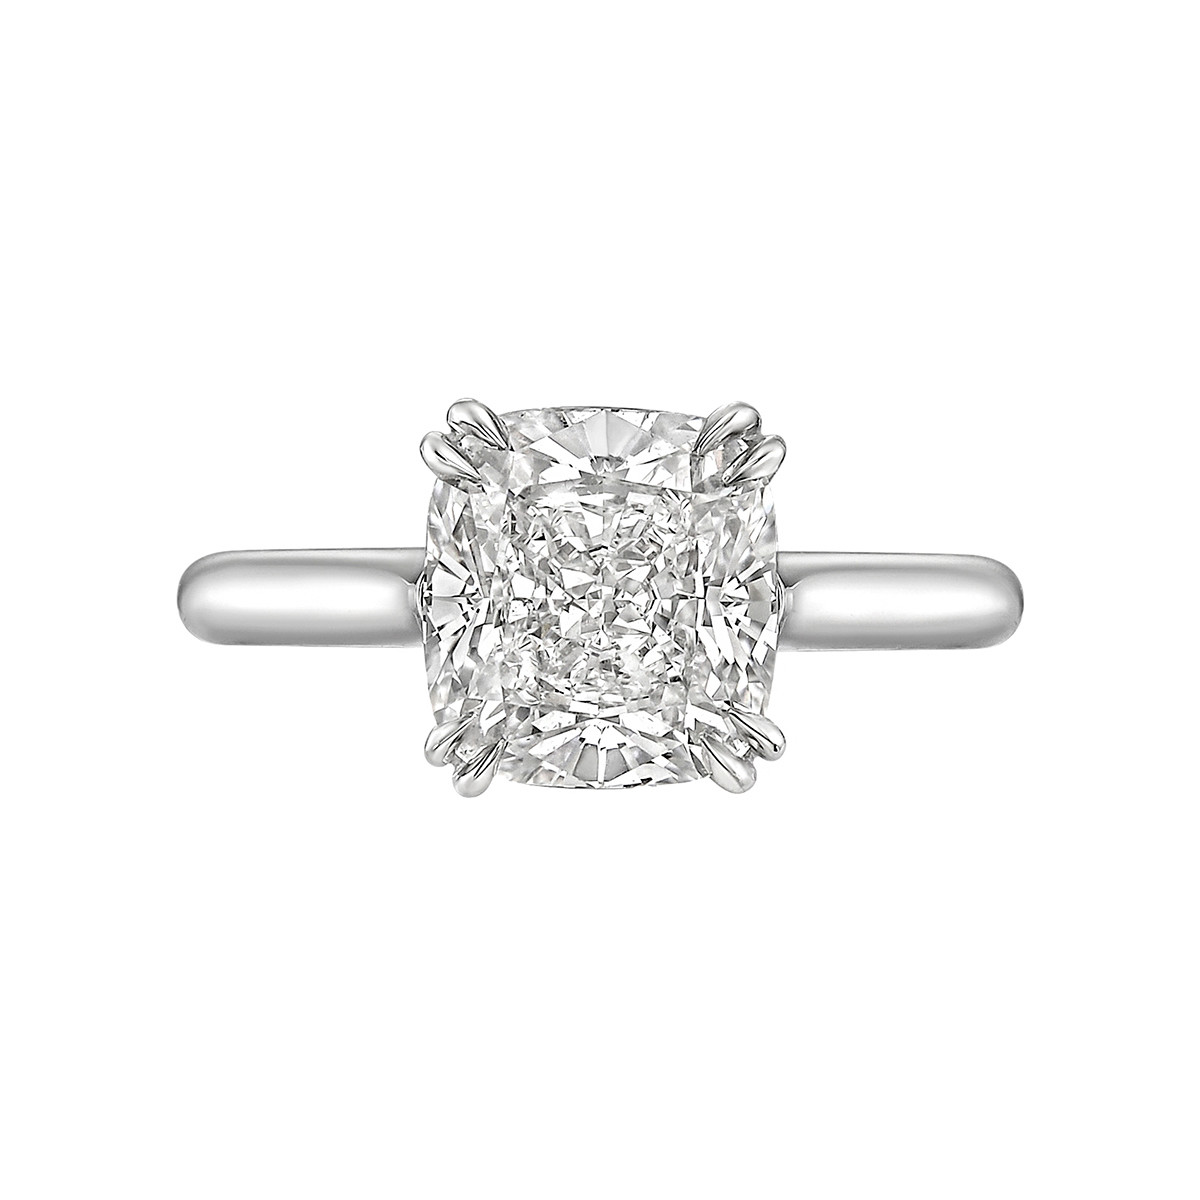 3.01ct Cushion-Cut Diamond Solitaire Ring